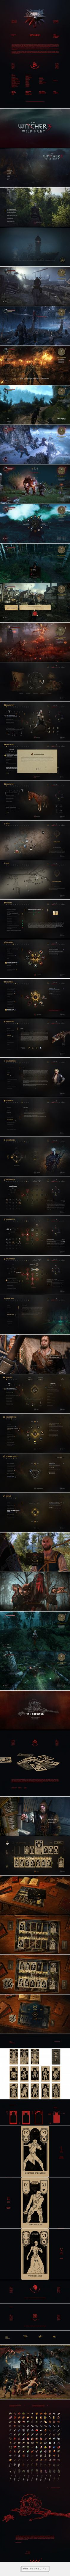 Witcher 3—UI & Gwint Redesigned on Behance - created via https://pinthemall.net